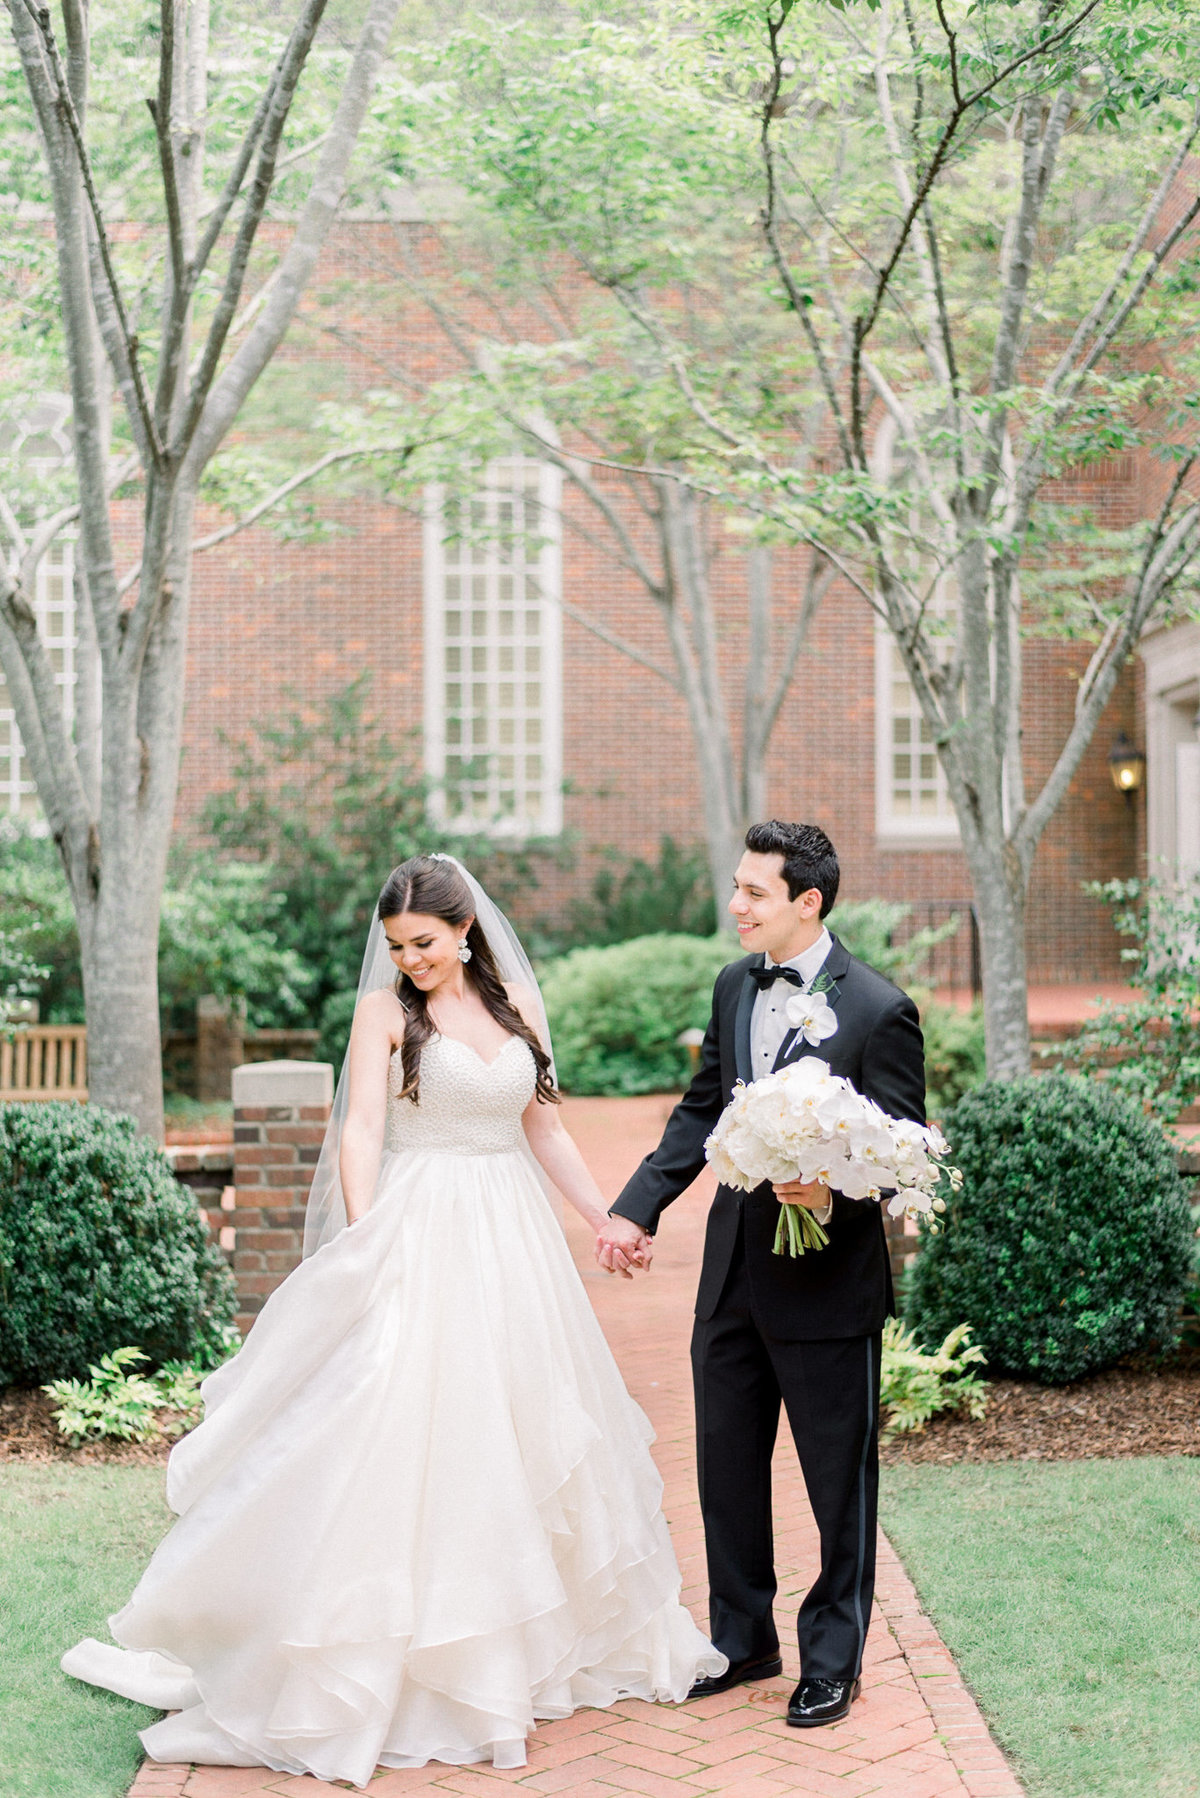 Canterbury Methodist Birmingham Museum of Art - Alabama Wedding Photographer15